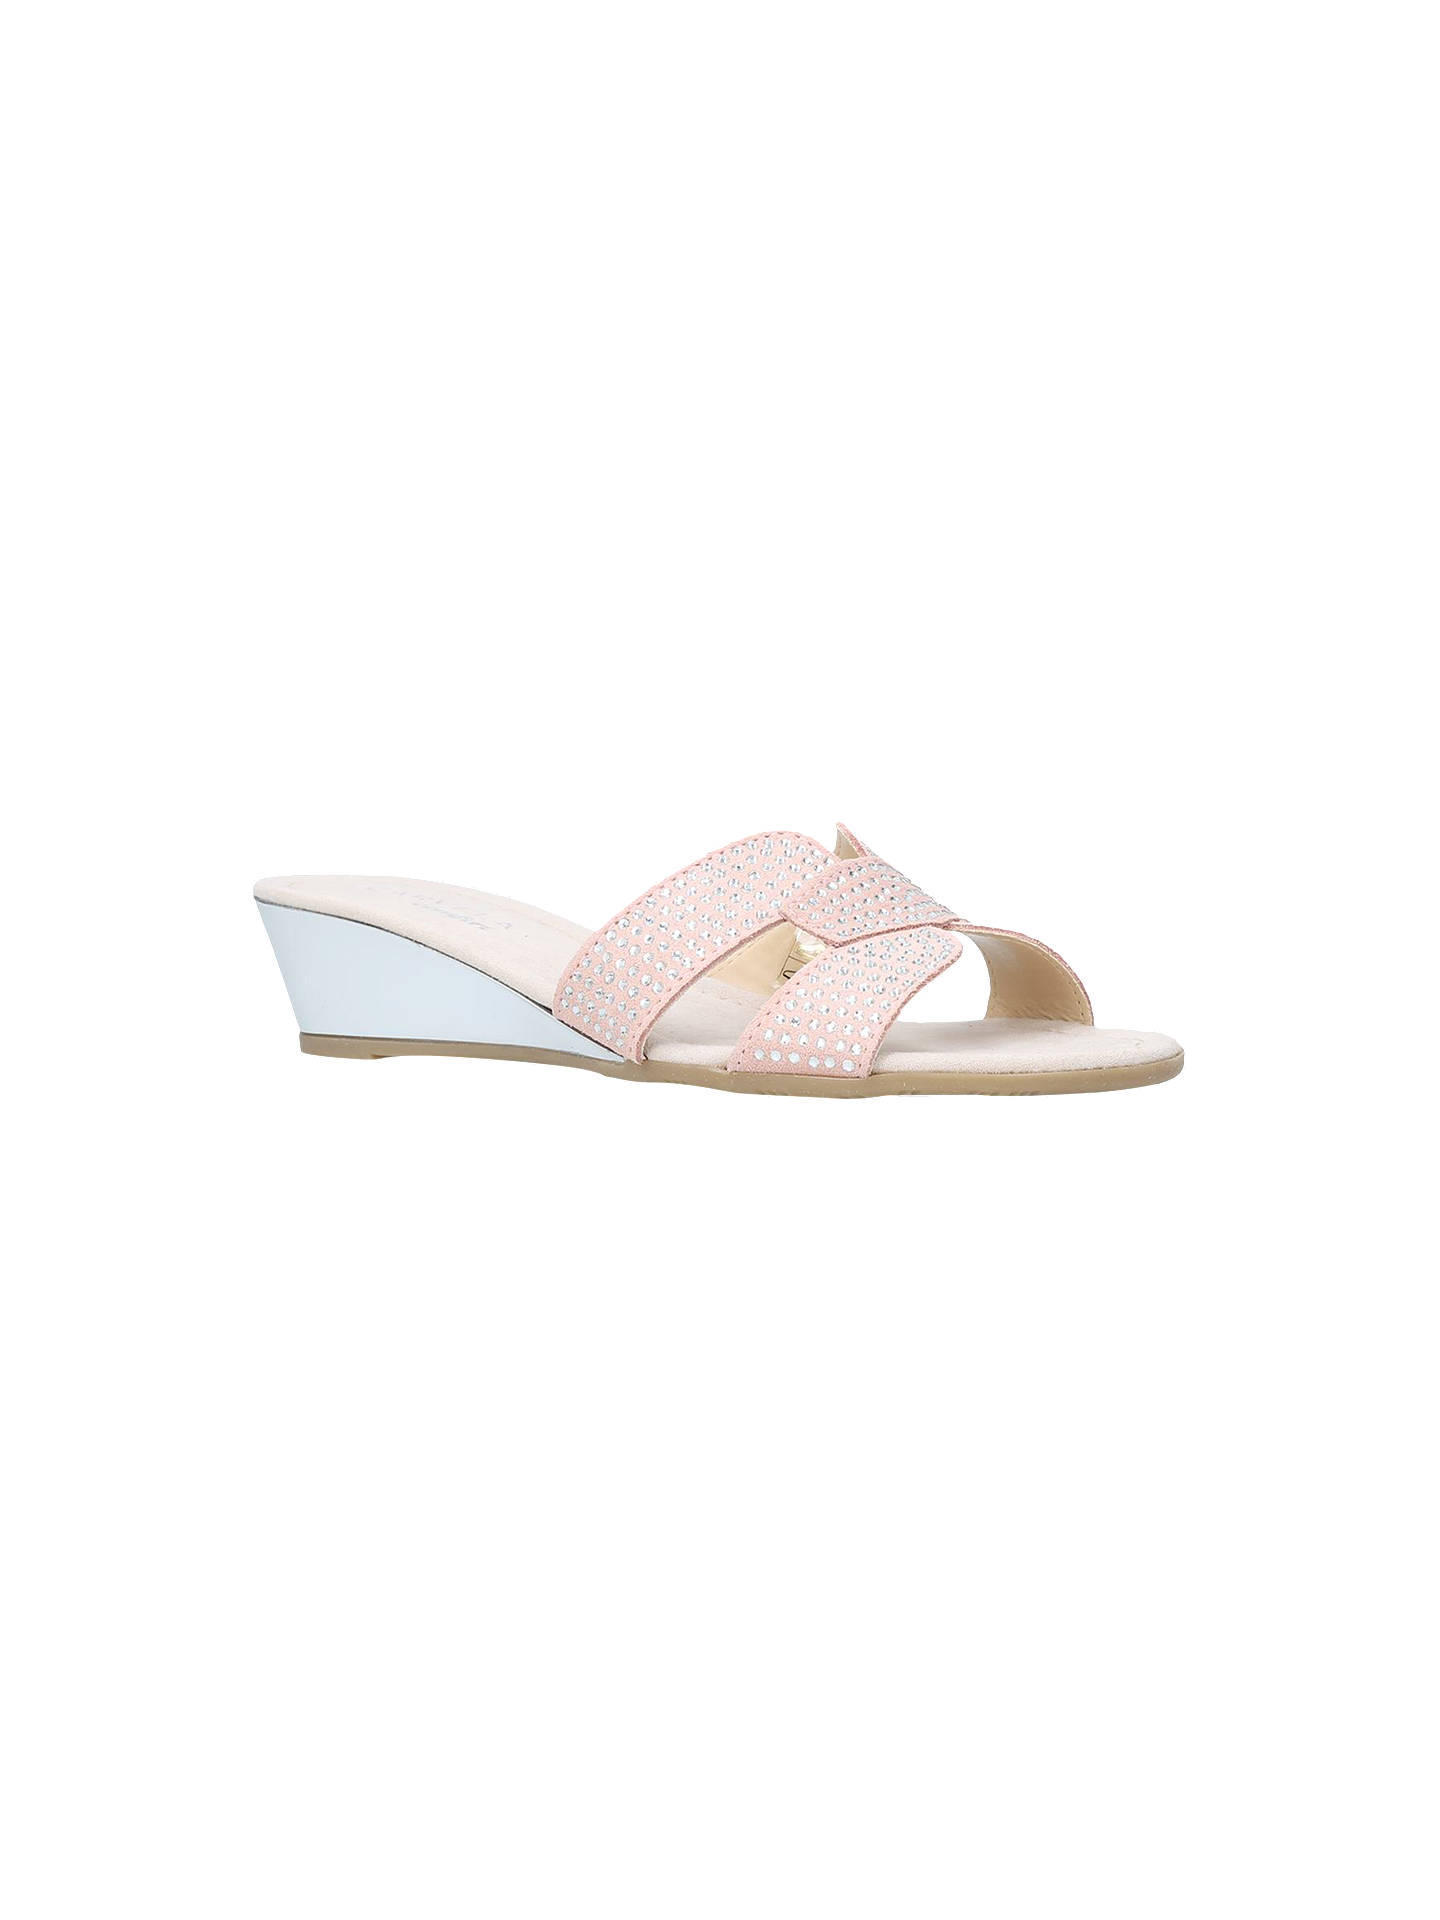 BuyCarvela Comfort Sade Wedge Heeled Sandals, Nude Suede, 3 Online at johnlewis.com